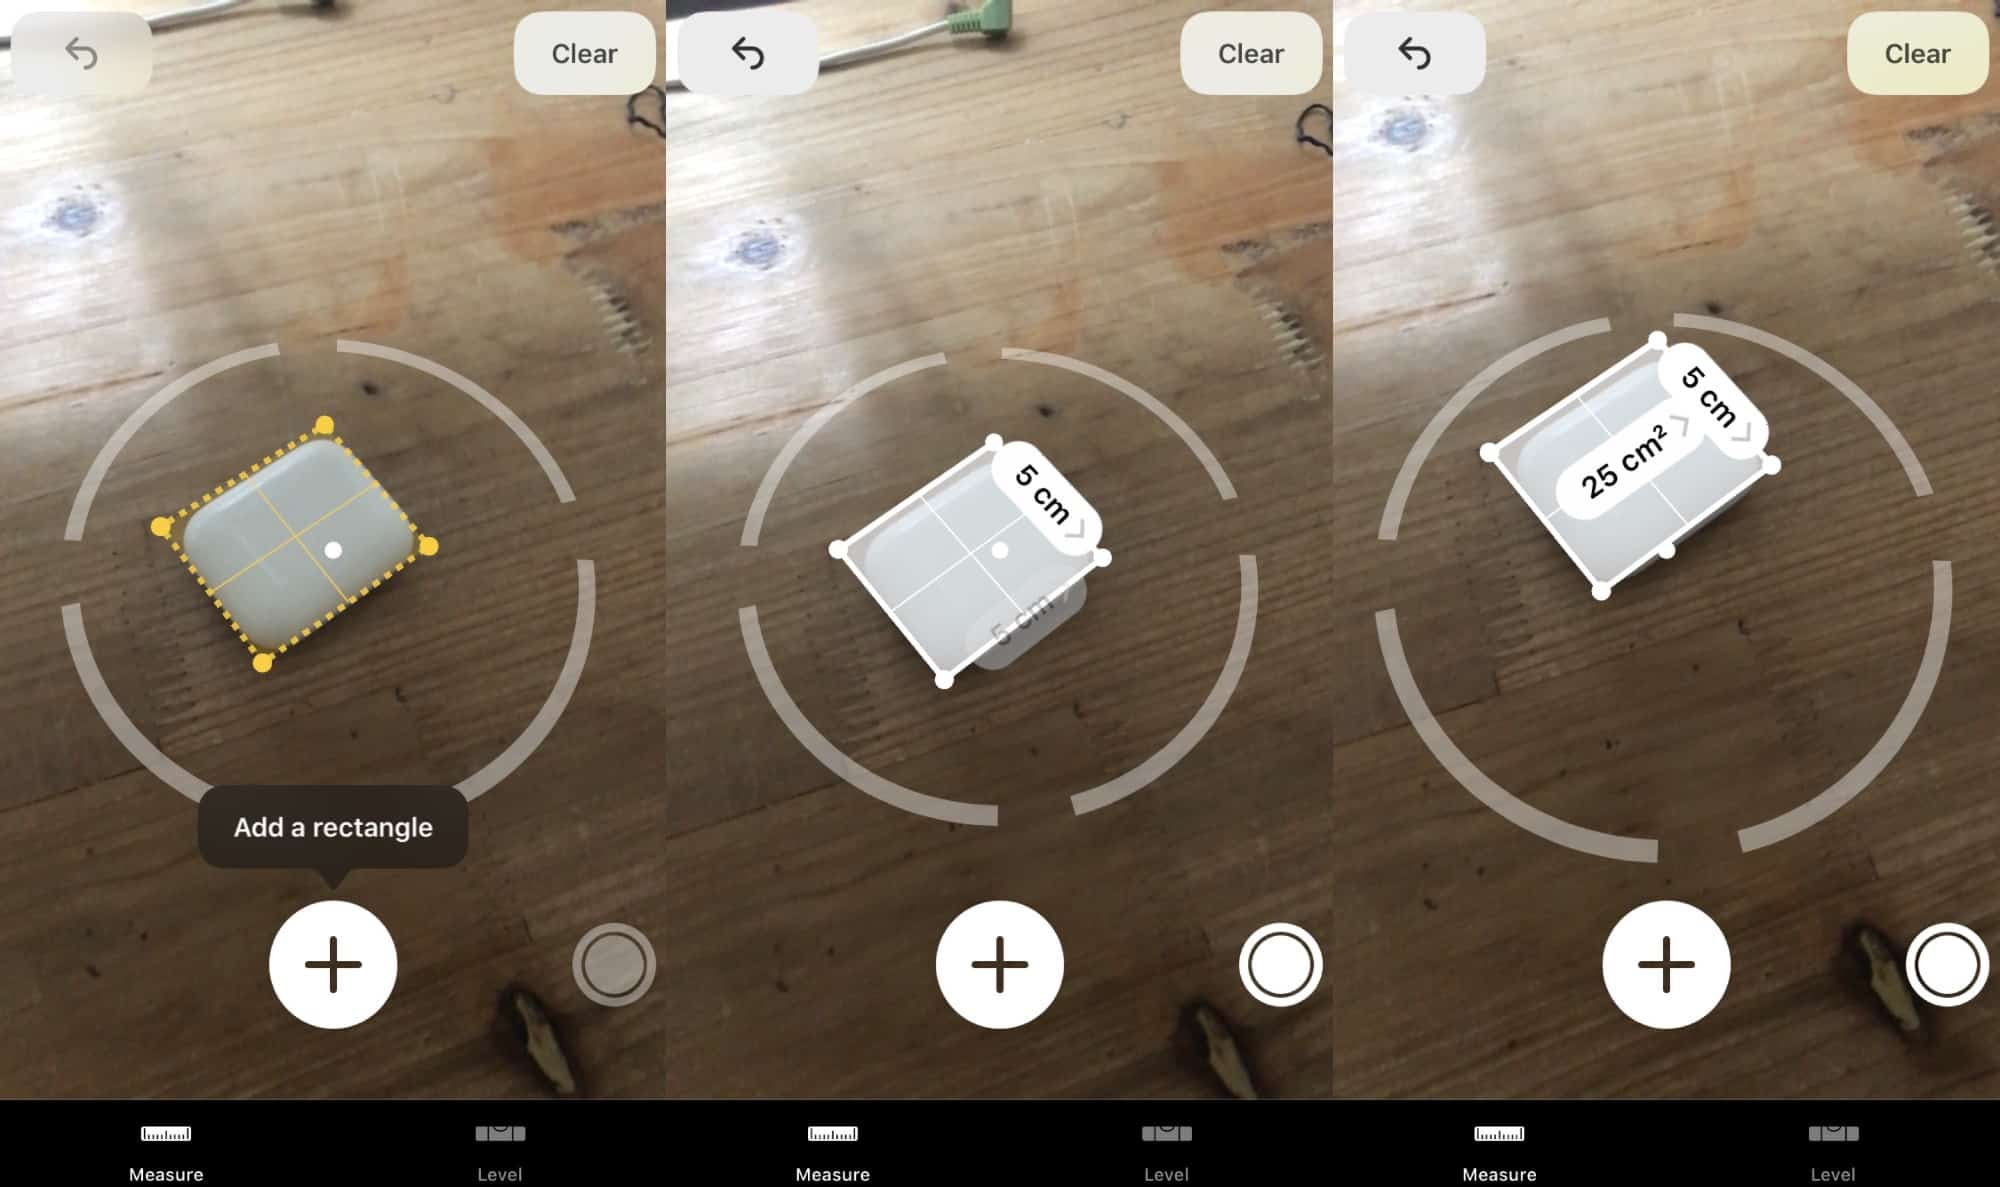 How to use Apple's new ARKit-powered Measure app in iOS 12